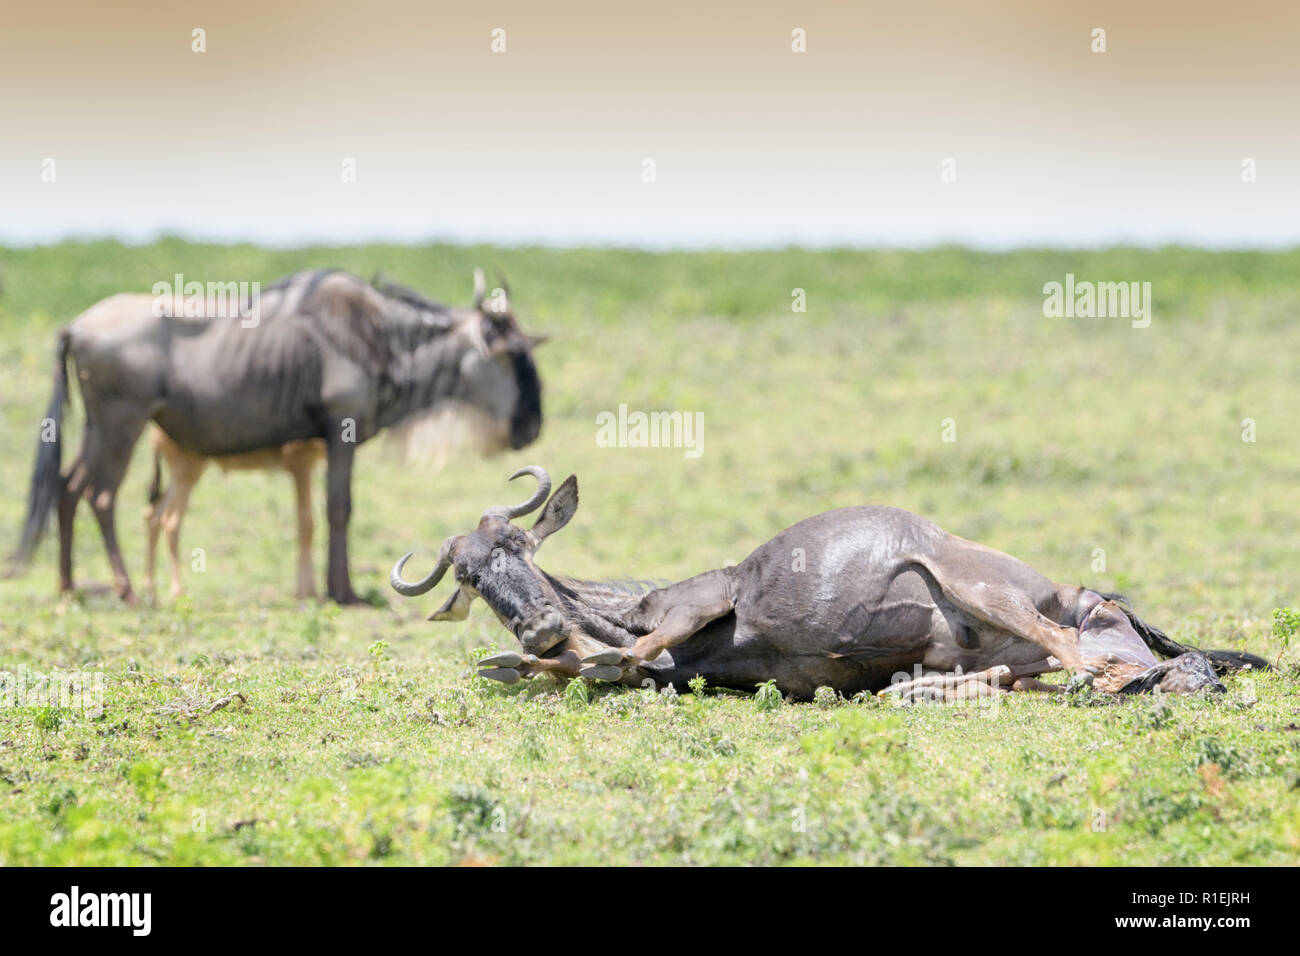 Blue Wildebeest (Connochaetes taurinus) lying down giving birth to a calf, Ngorongoro conservation area, Tanzania. - Stock Image